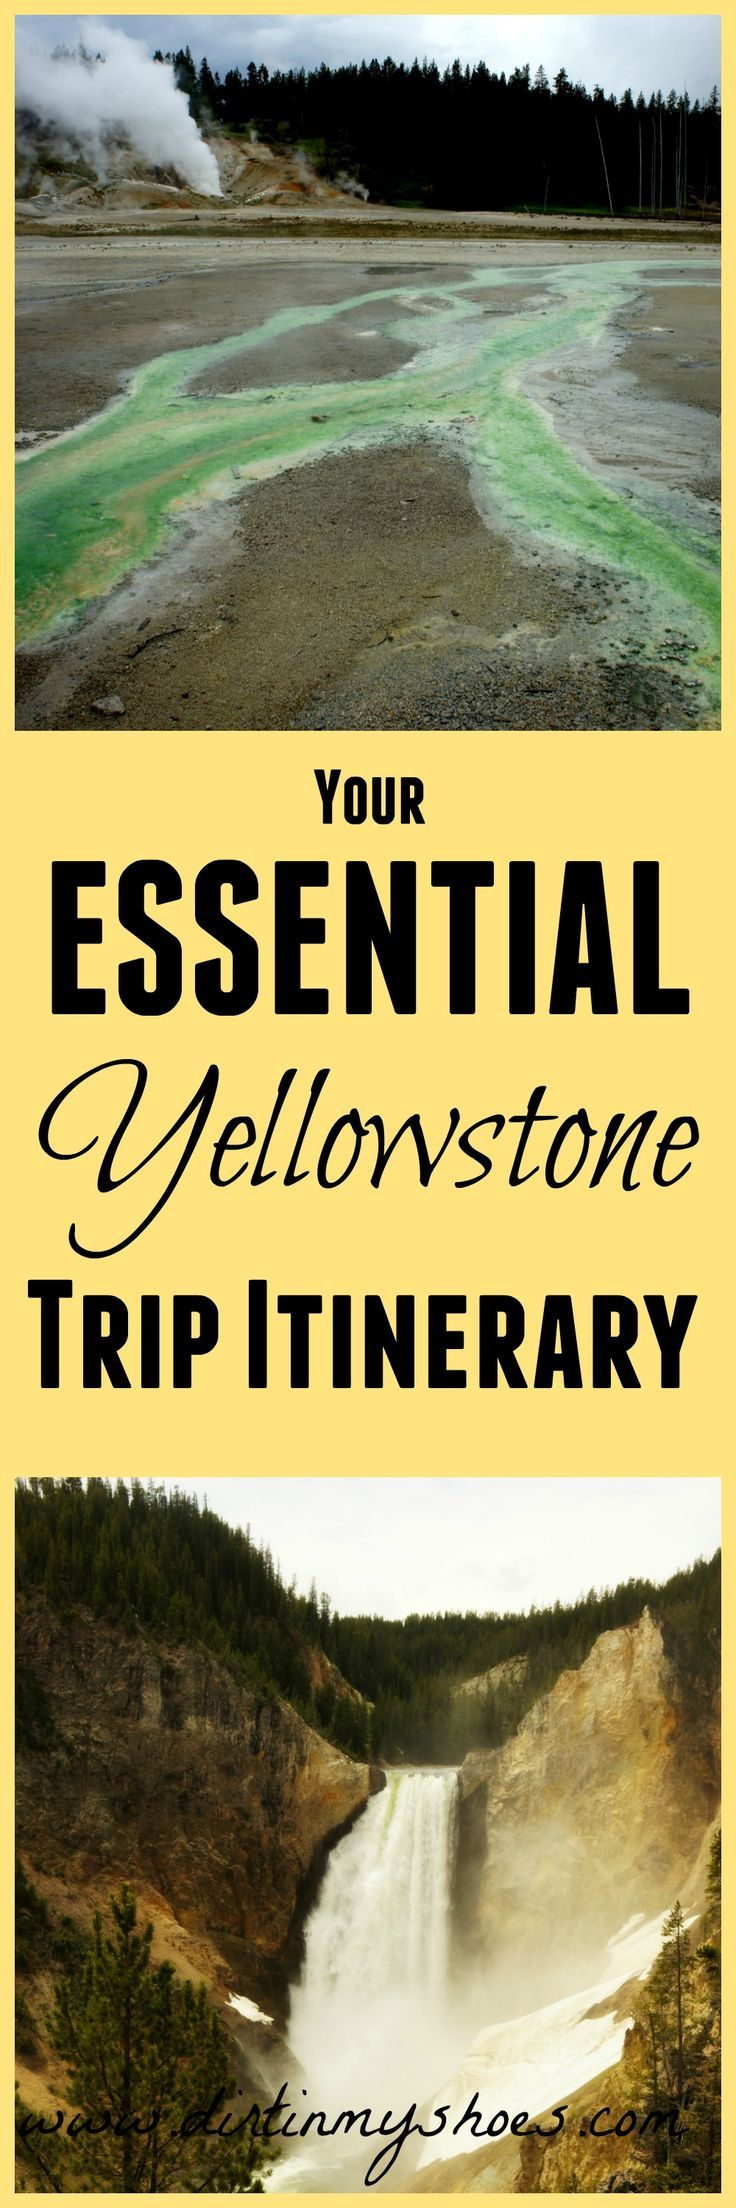 Includes Yellowstone National Park tips and tricks